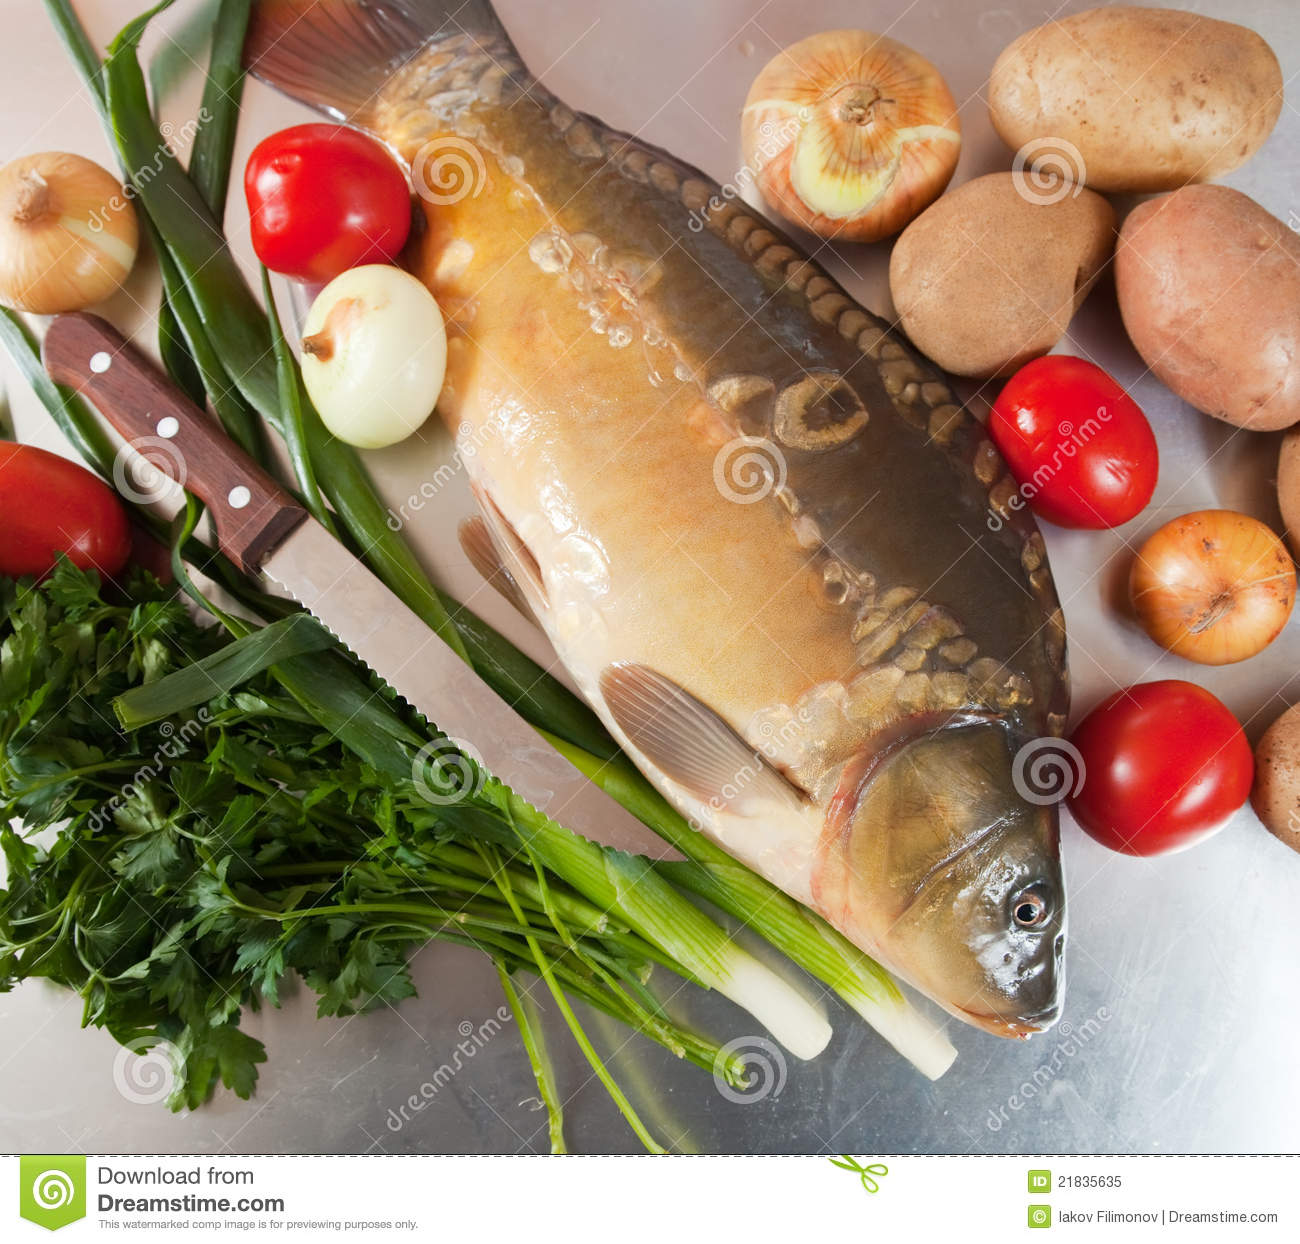 Carp fish with vegetables royalty free stock photo image for Fish with vegetables